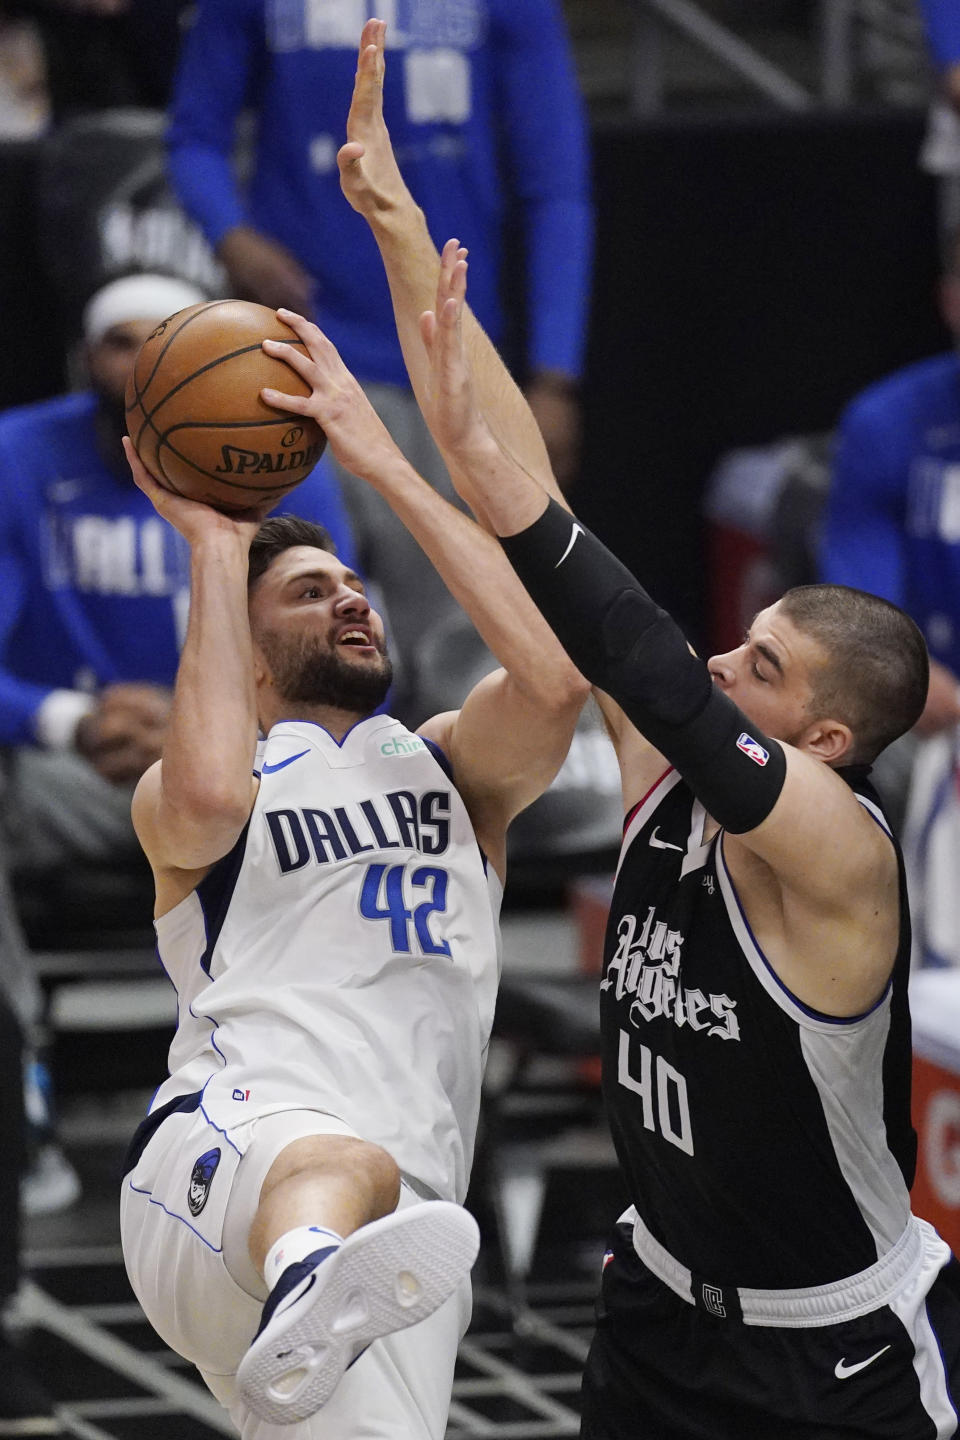 Dallas Mavericks forward Maxi Kleber, left, shoots as Los Angeles Clippers center Ivica Zubac defends during the first half in Game 1 of an NBA basketball first-round playoff series Saturday, May 22, 2021, in Los Angeles. (AP Photo/Mark J. Terrill)